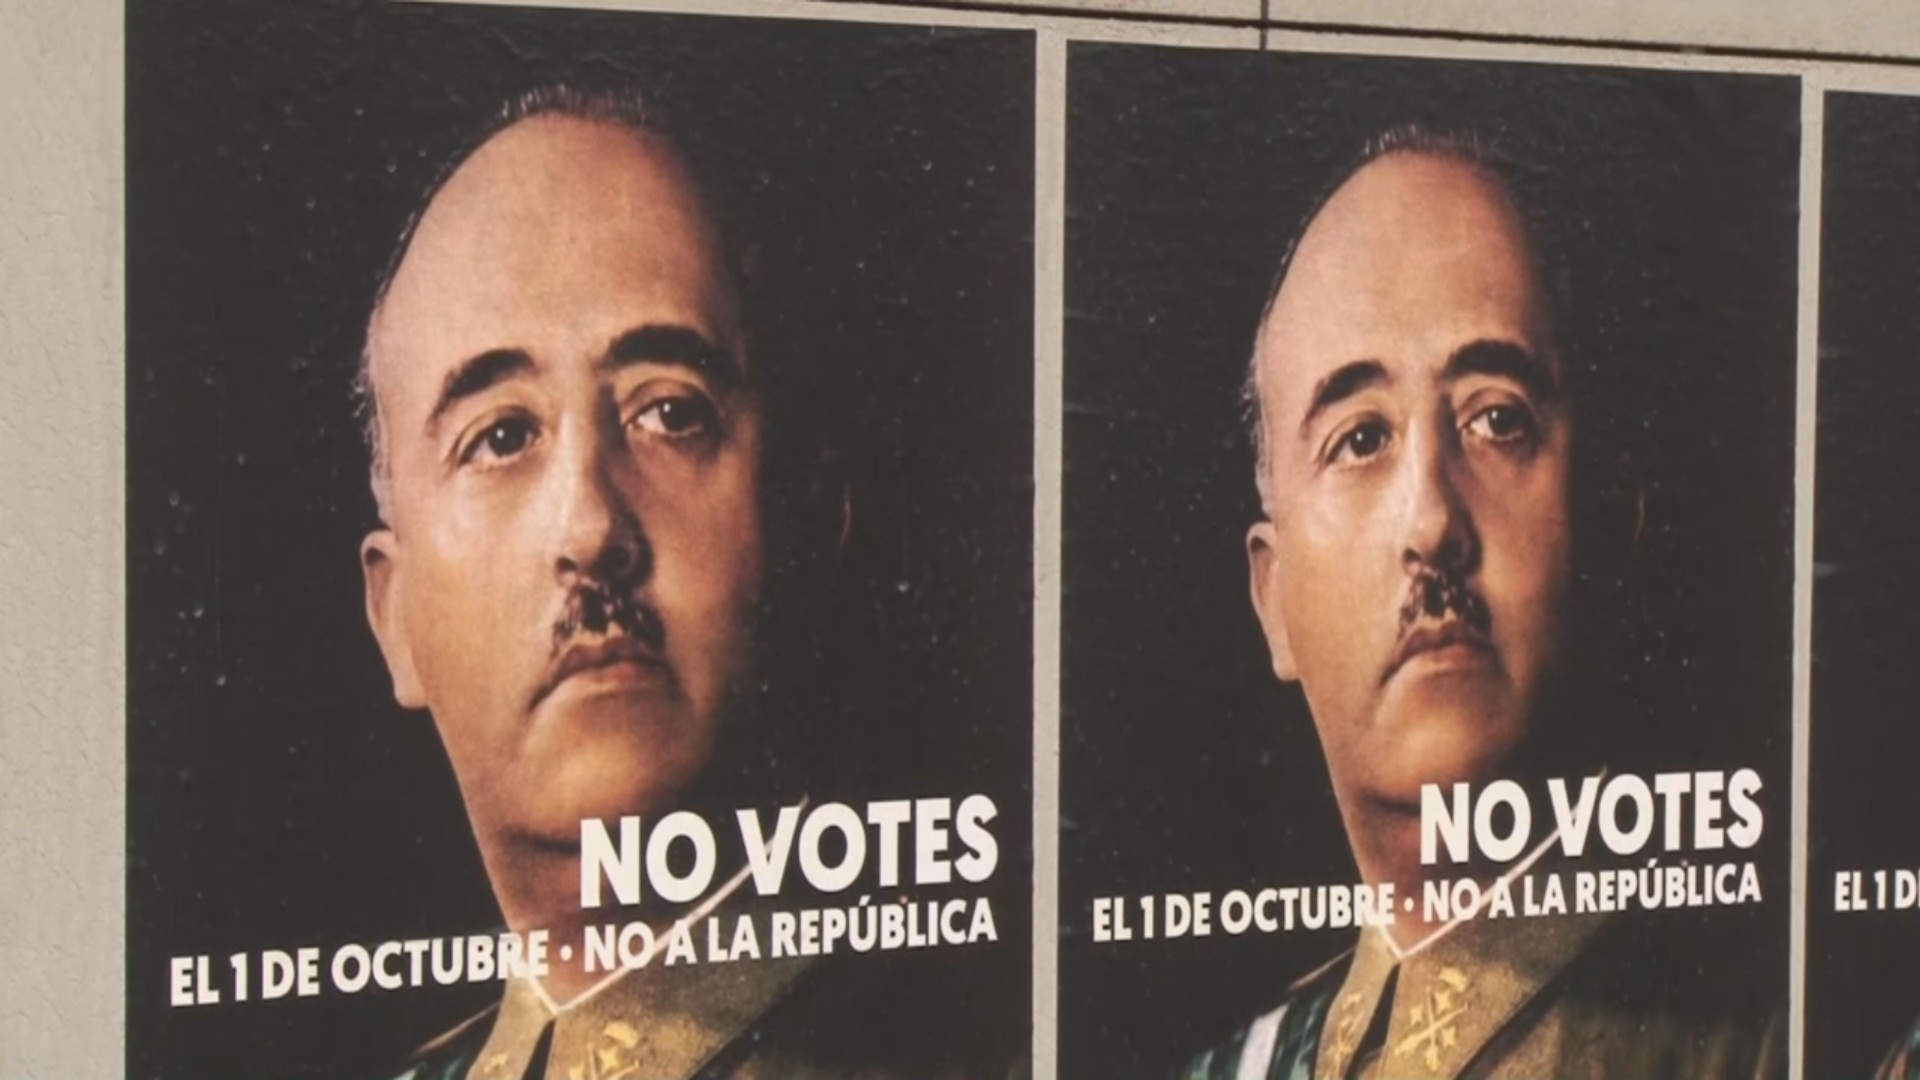 Franco posters in different Catalan cities